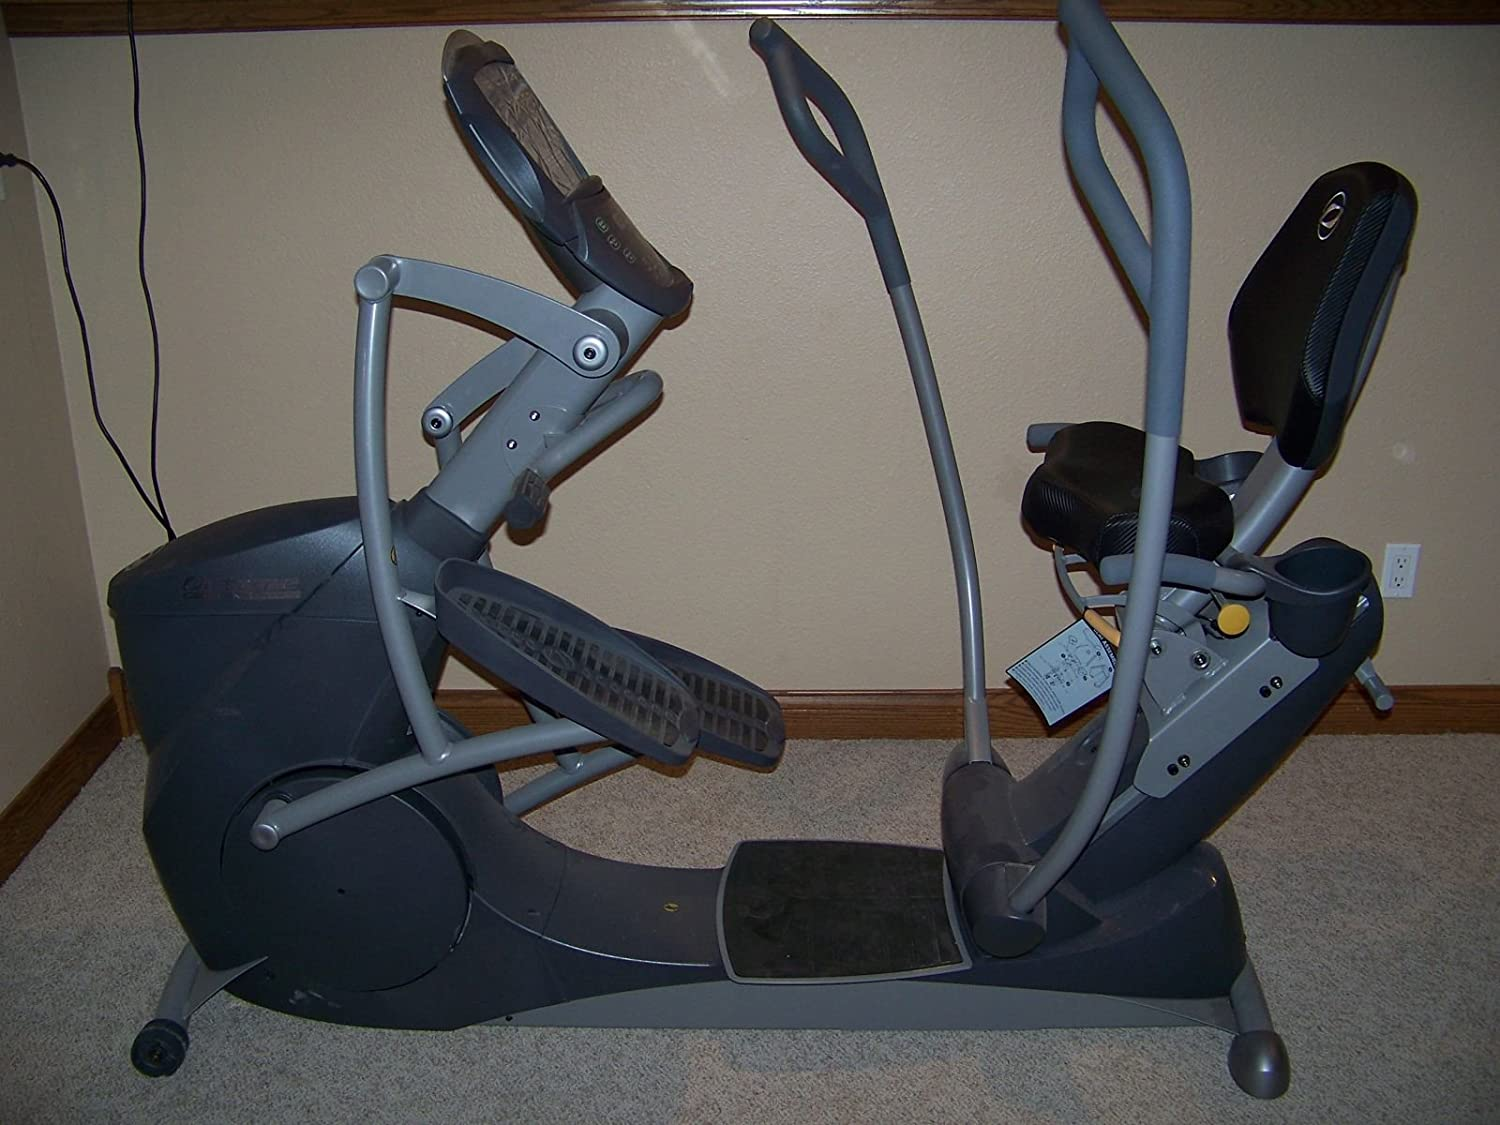 Amazon.com : Octane Fitness Xride XR6ce Seated Elliptical Cross Trainer : Sports & Outdoors